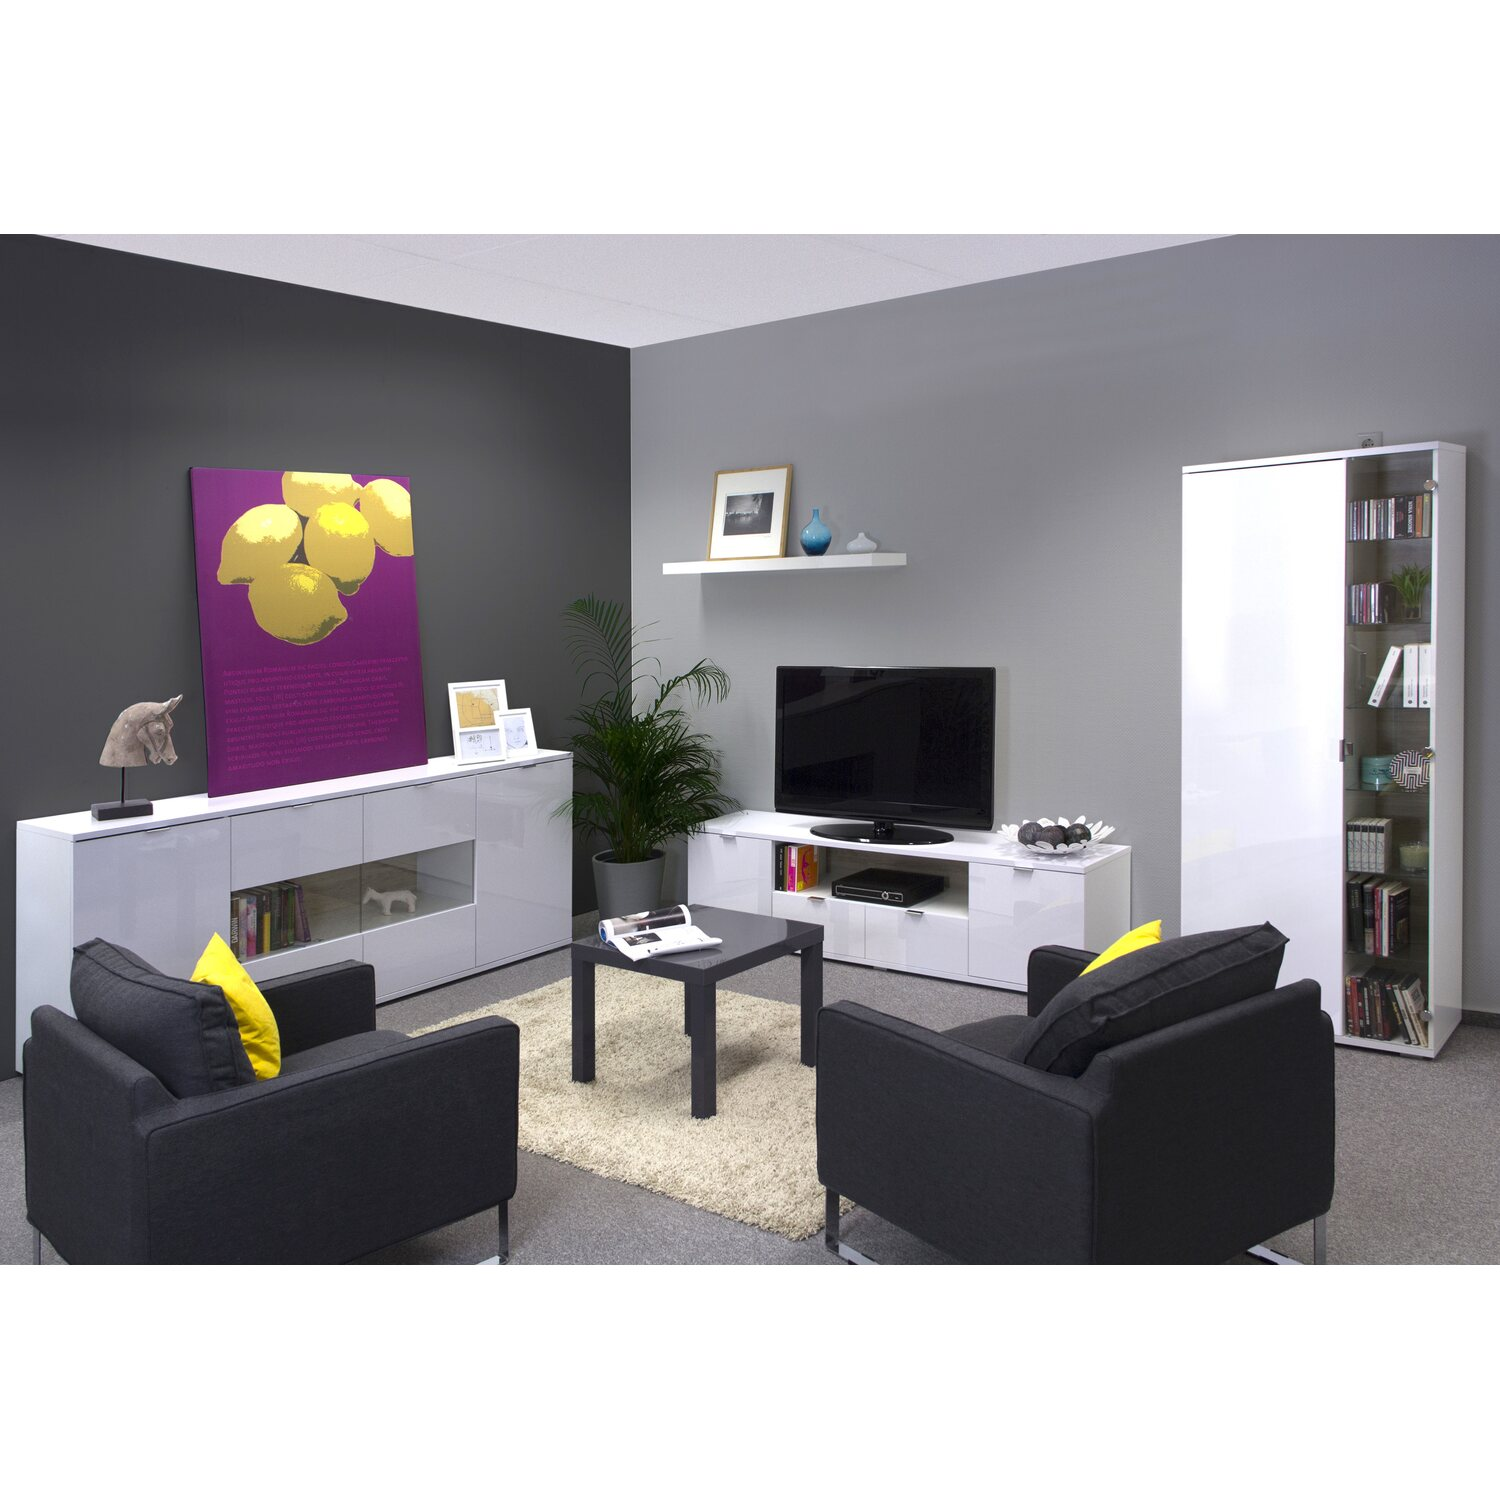 hochwertige wohnzimmer vitrine mit glast r in brilliant wei kaufen bei obi. Black Bedroom Furniture Sets. Home Design Ideas